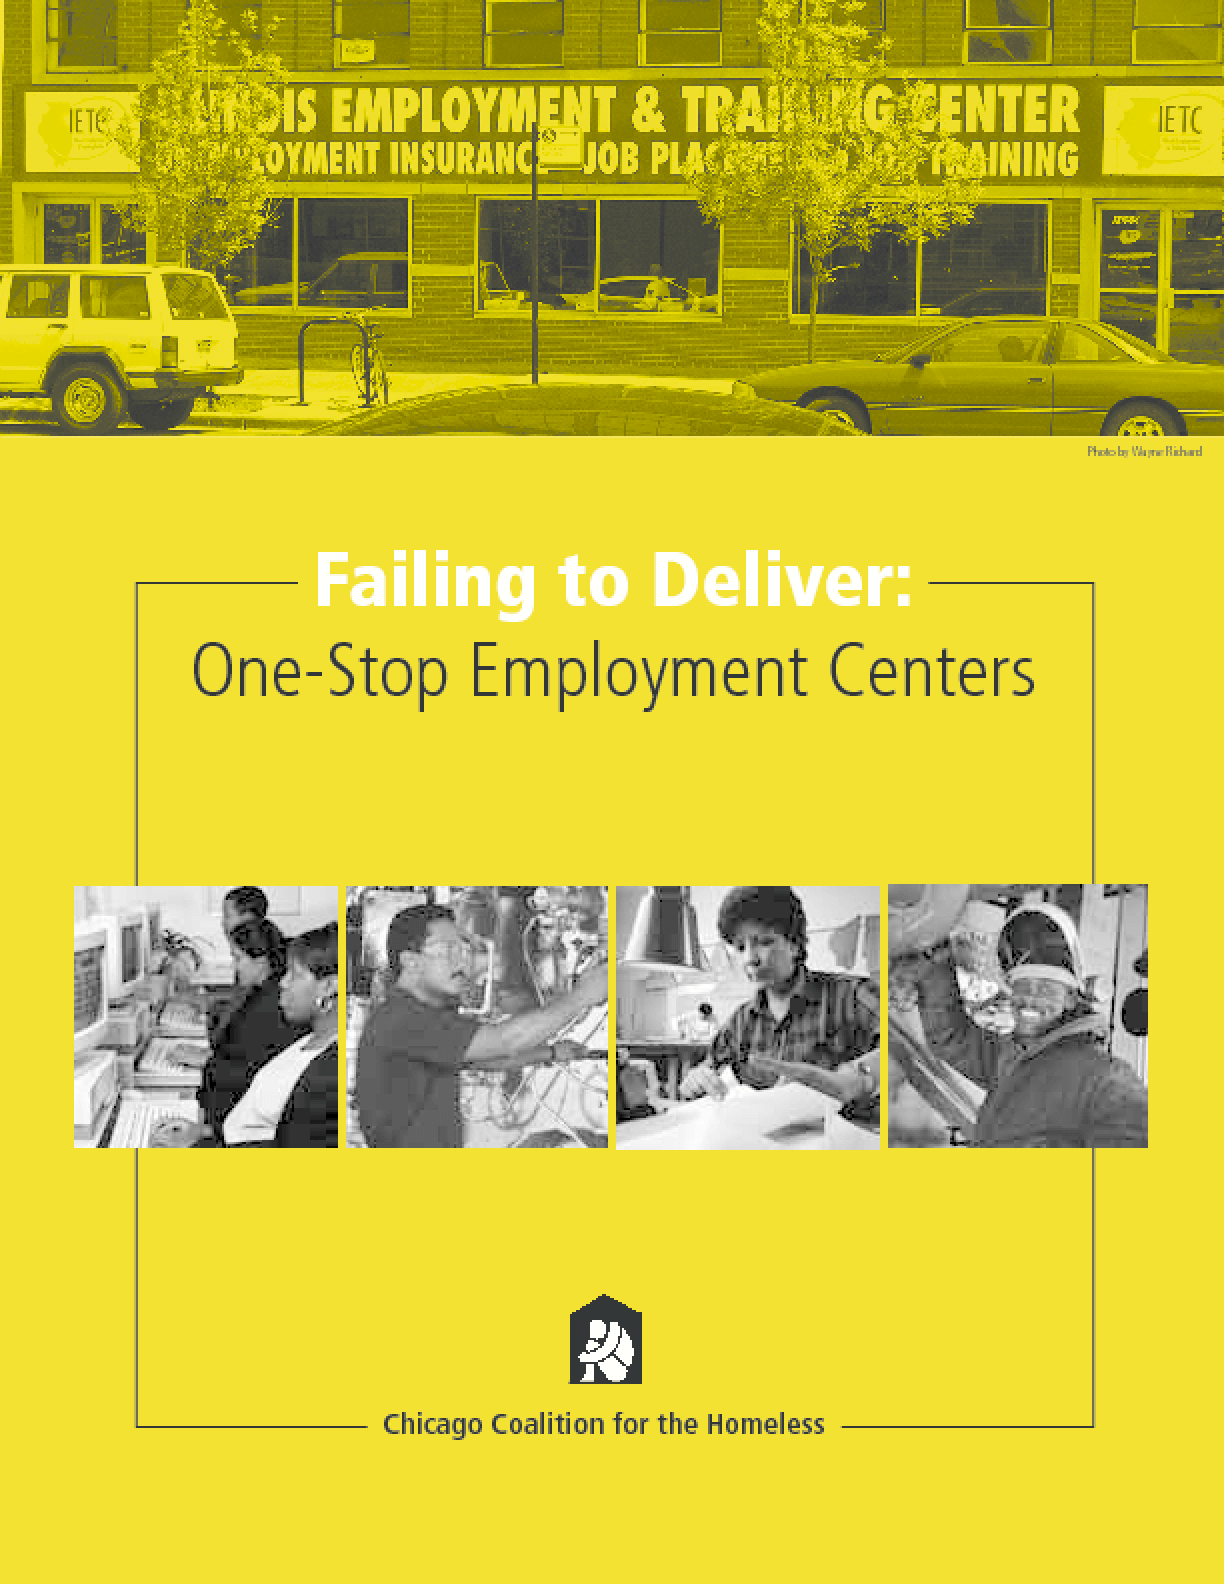 Failing to Deliver: One Stop Employment Centers